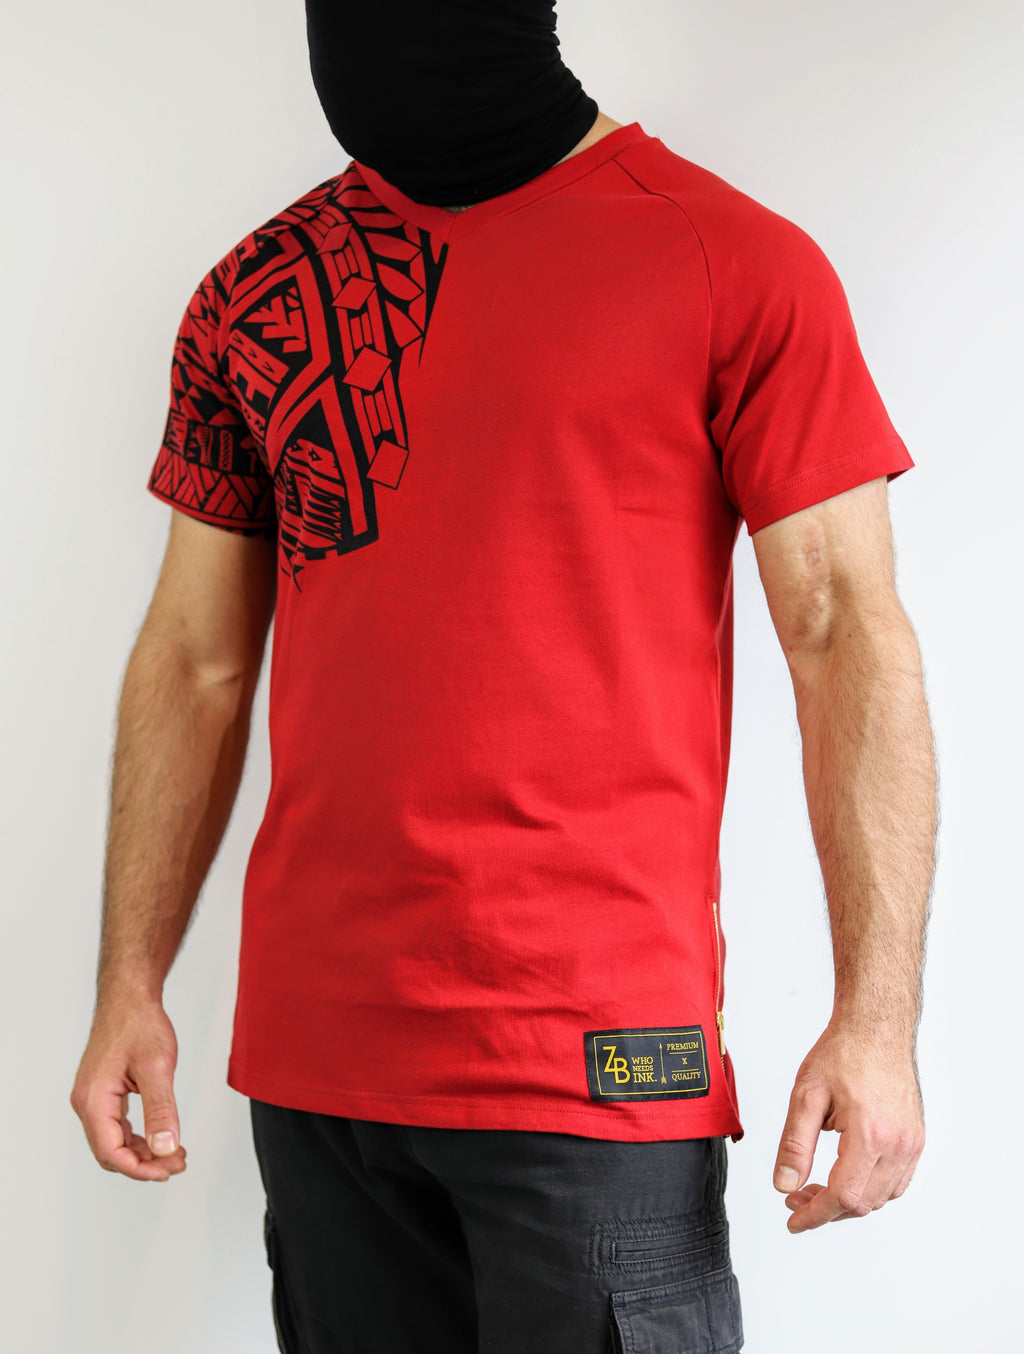 Heavyweight Premium RED T-Shirts